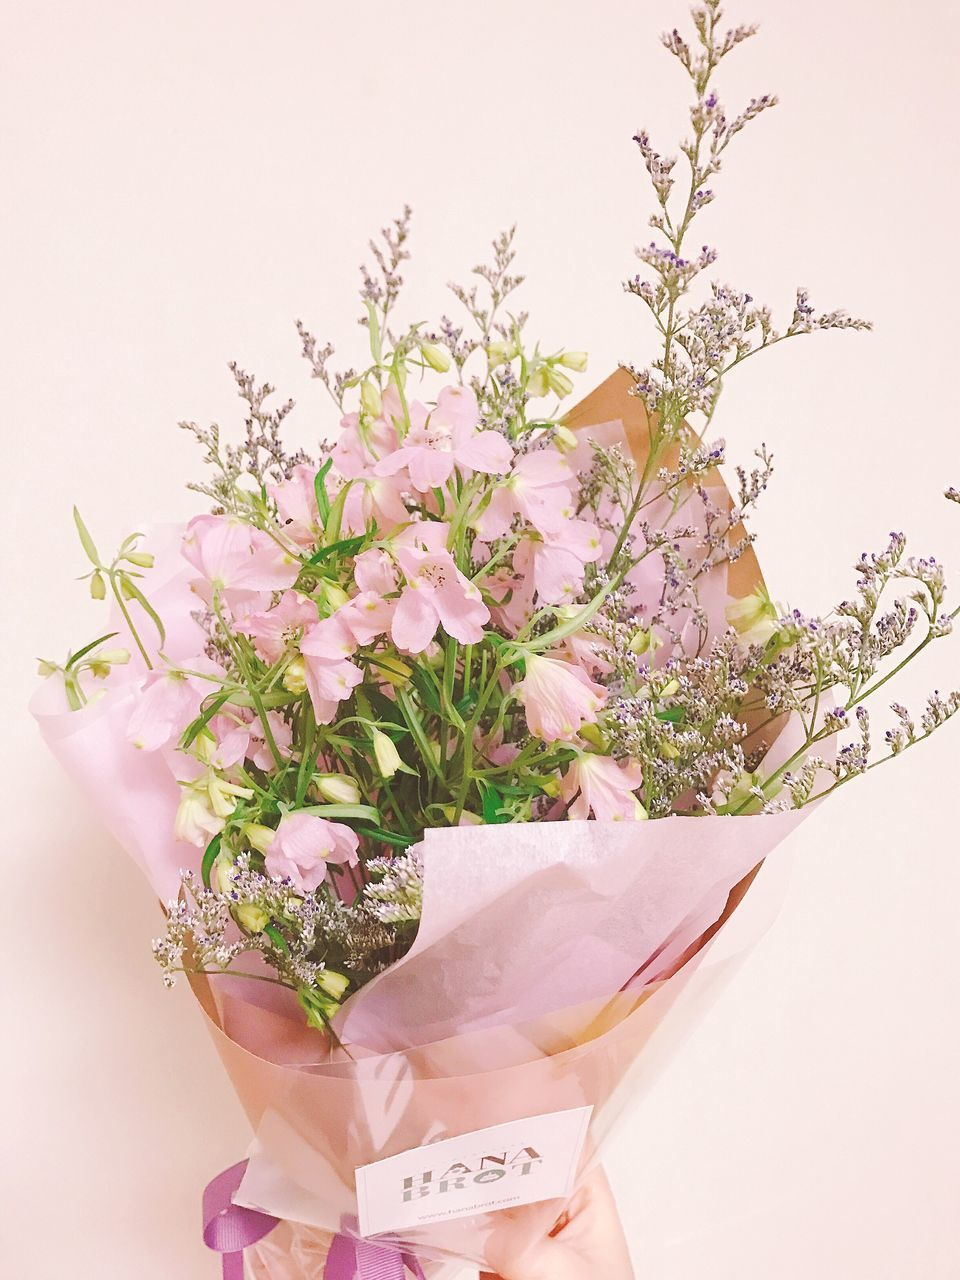 flower, pink color, nature, fragility, freshness, beauty in nature, growth, petal, plant, flower head, no people, studio shot, close-up, white background, day, bouquet, indoors, florist